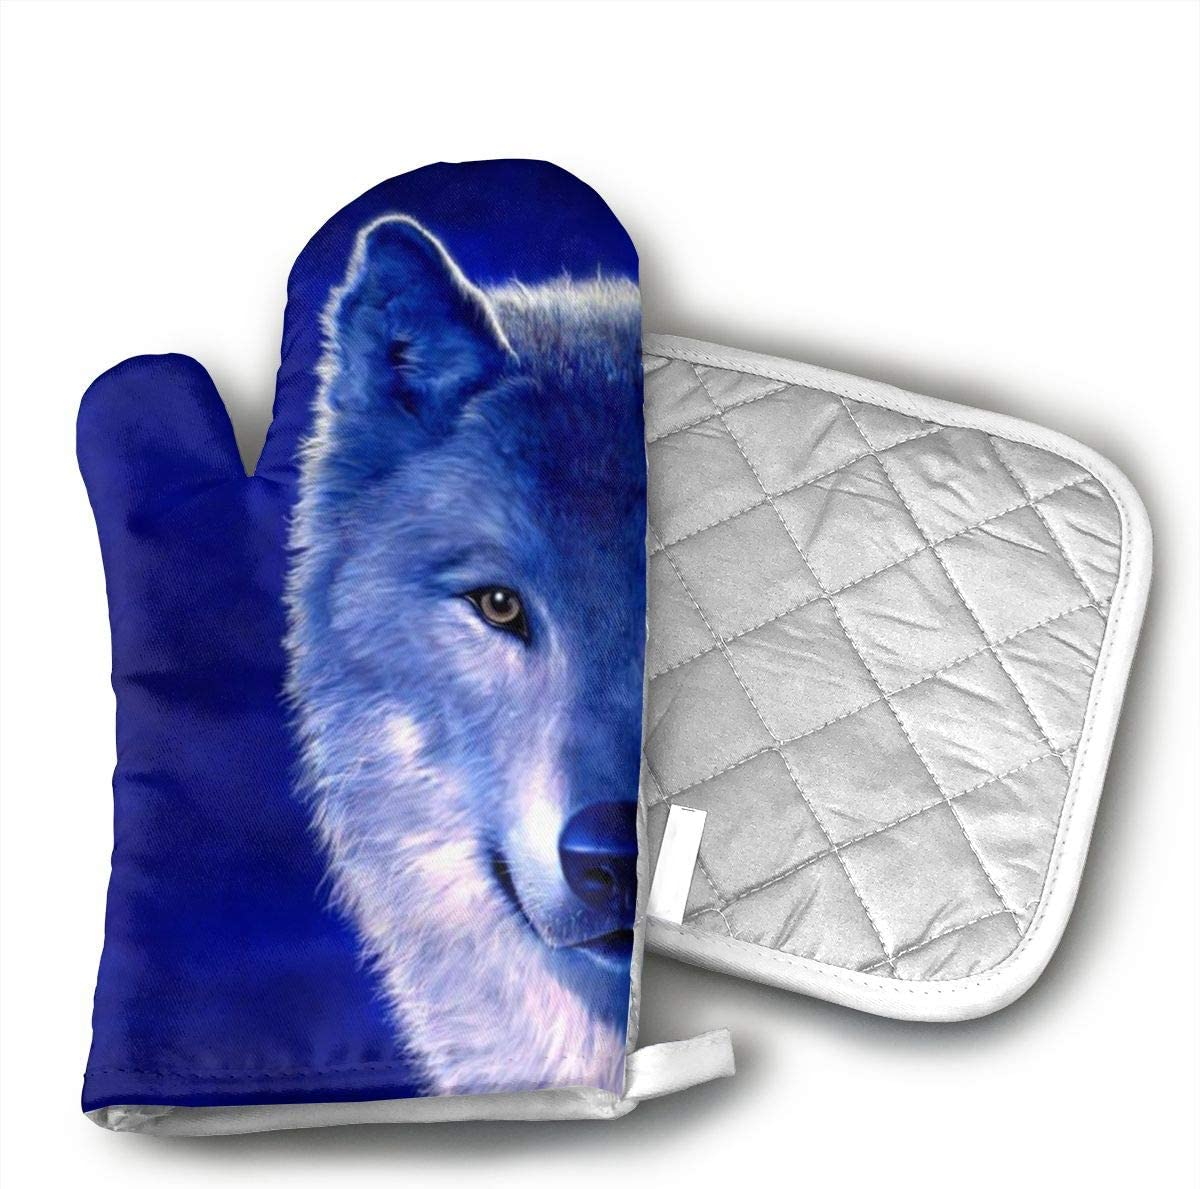 UYRHFS Wolves Blue Oven Mitts and Pot Holder Kitchen Set with, Heat Resistant, Oven Gloves and Pot Holders 2pcs Set for BBQ Cooking Baking